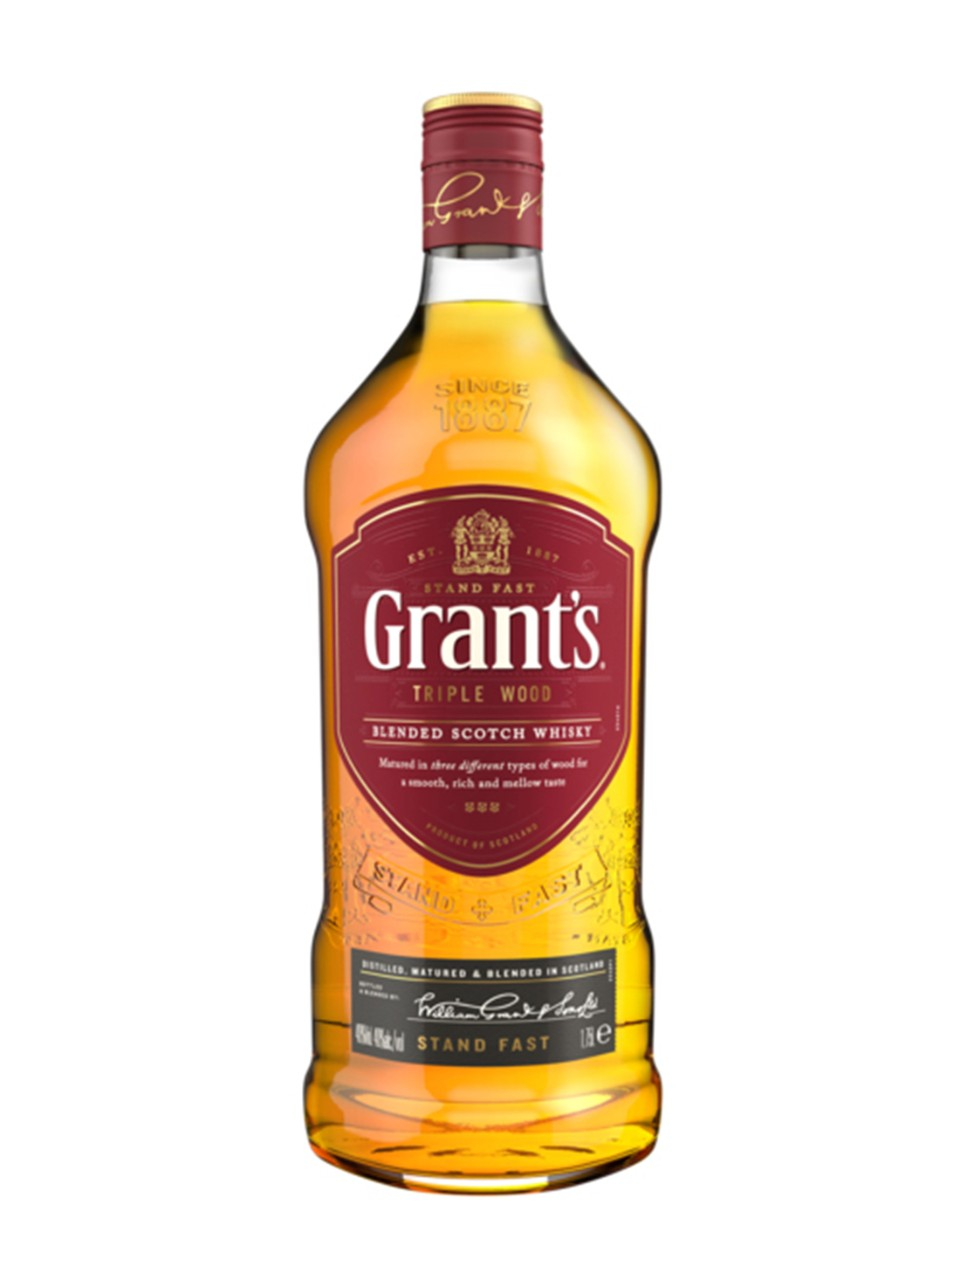 Grant's Family Reserve Scotch Whisky from LCBO